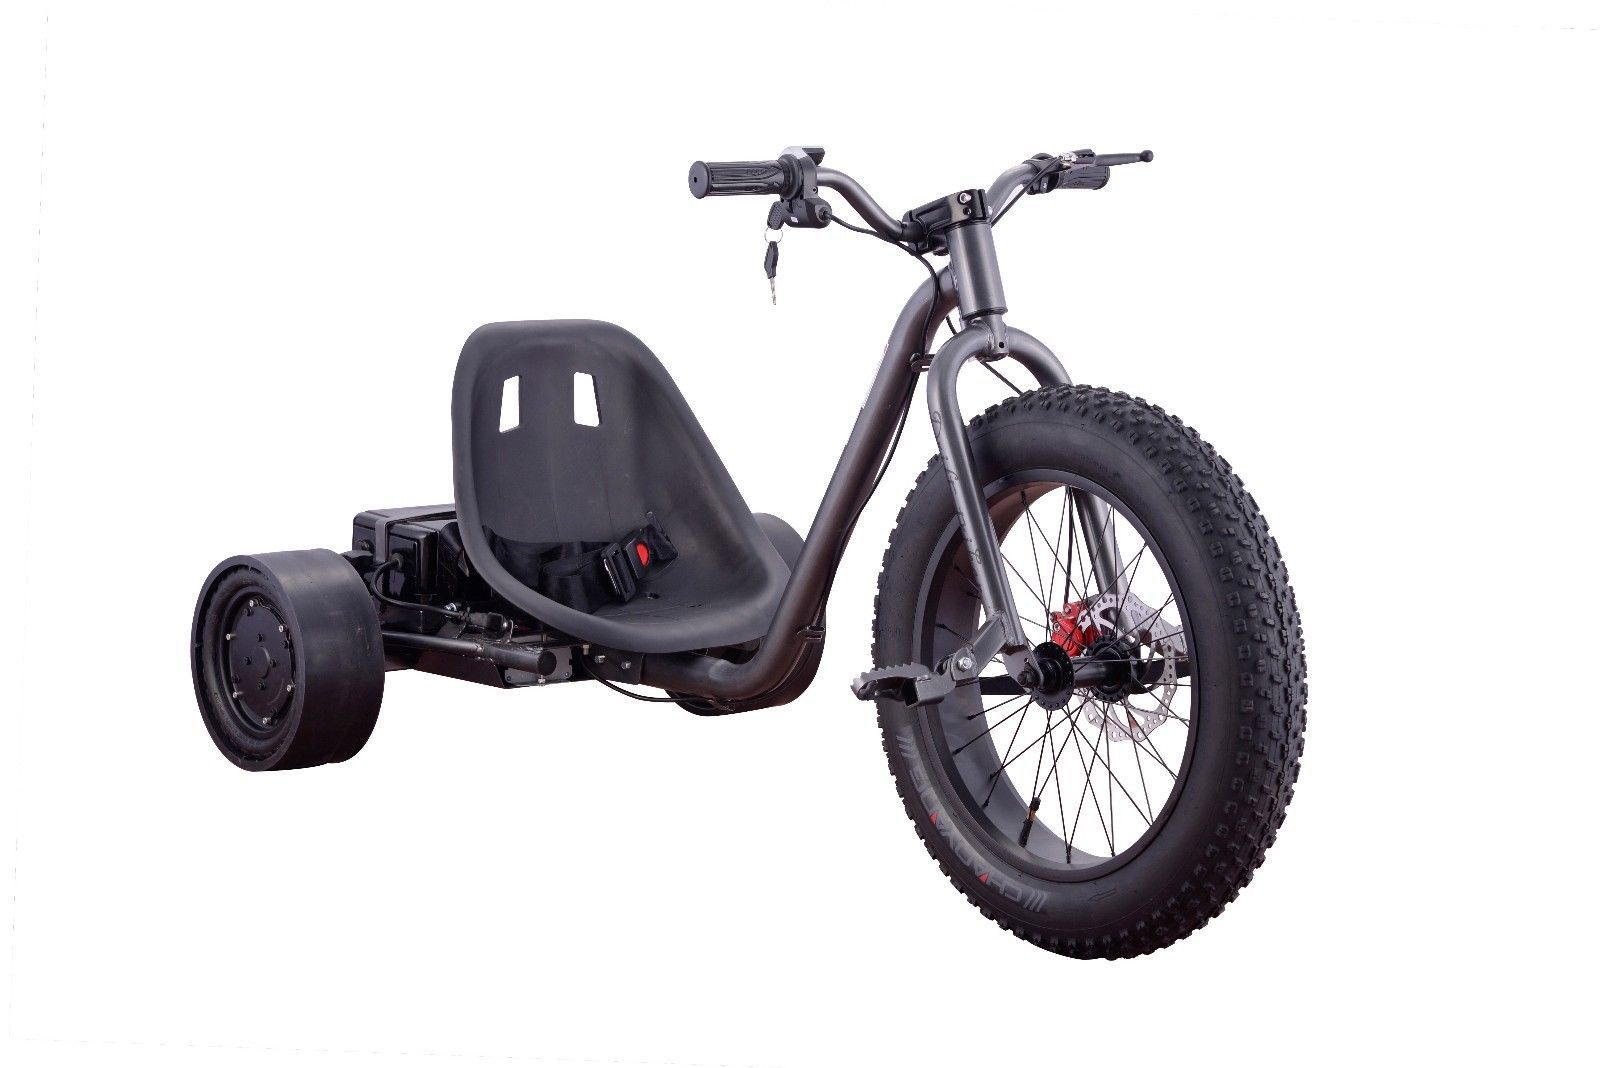 drift trike 36v battery adult teens drifting tricycle bike. Black Bedroom Furniture Sets. Home Design Ideas